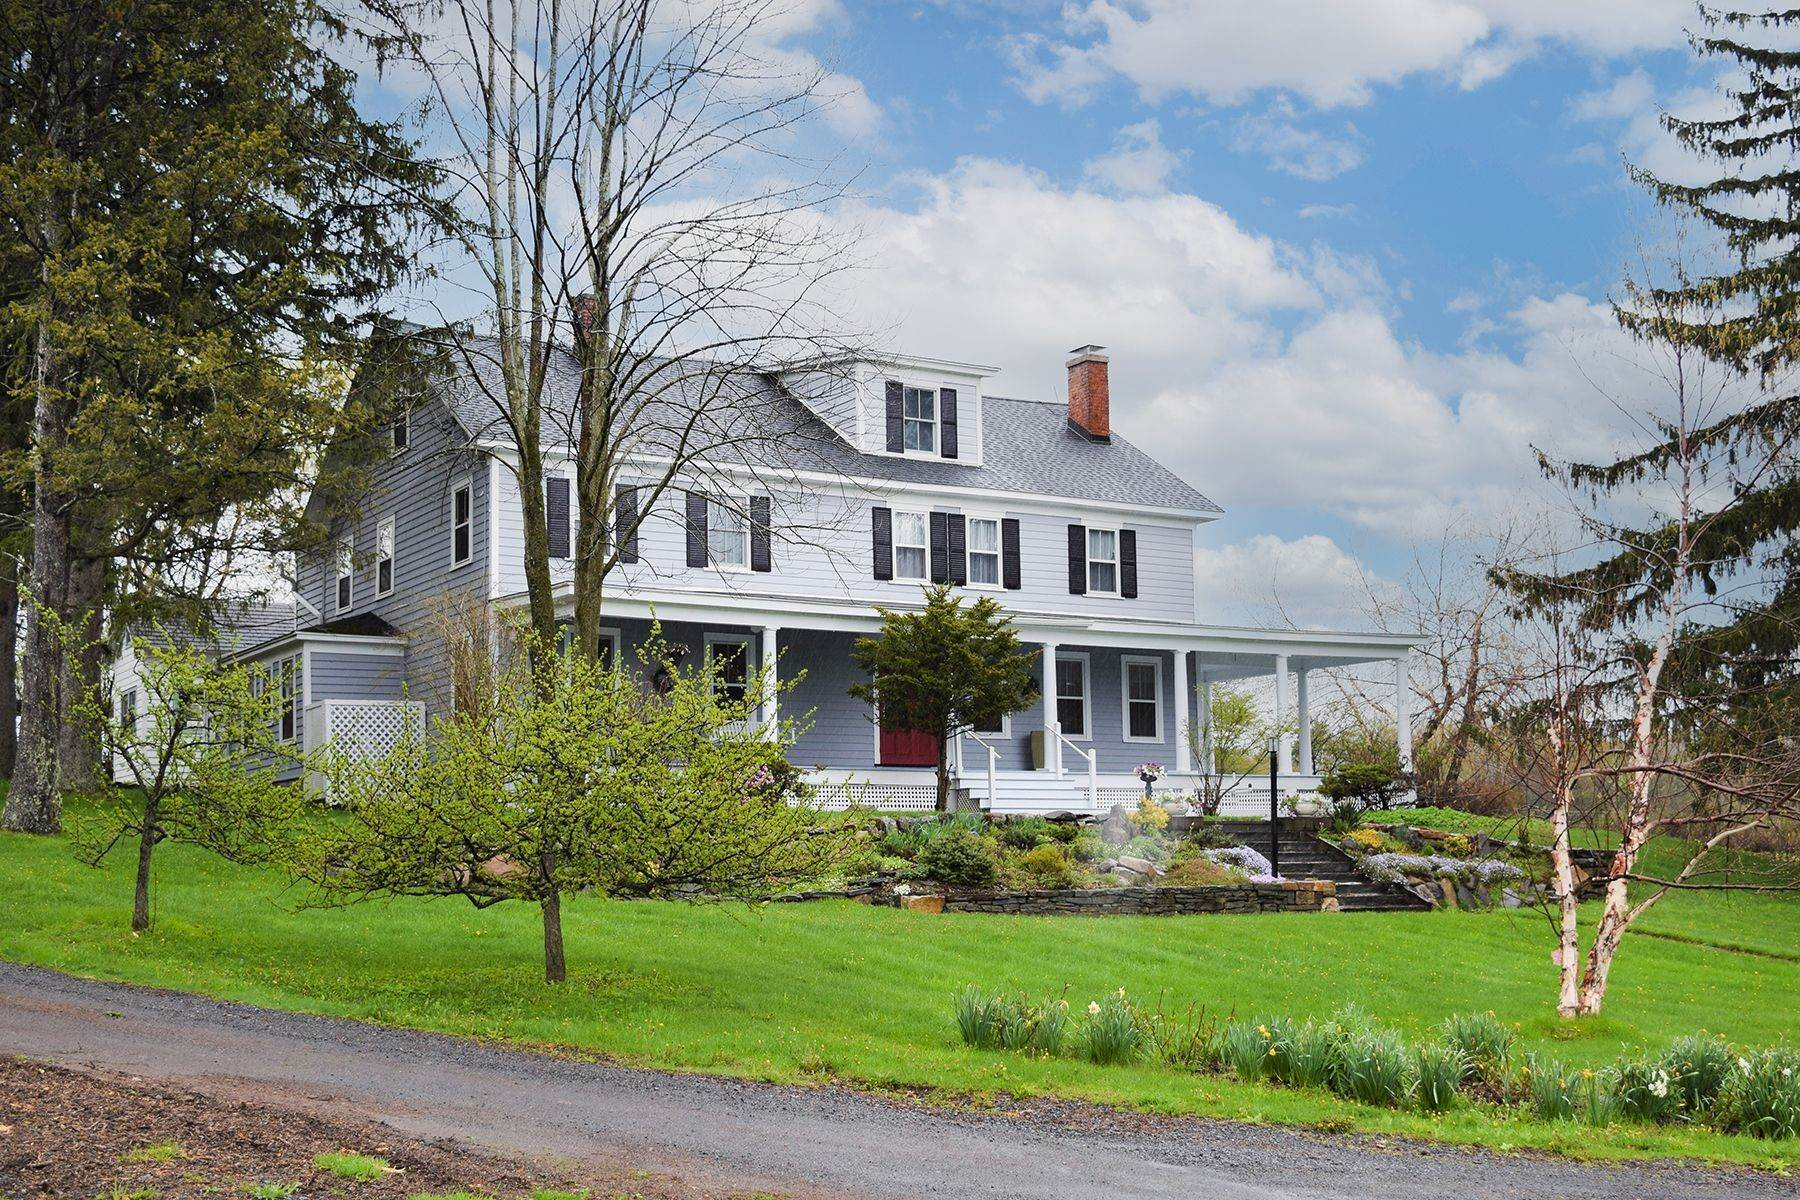 Single Family Homes for Sale at Historic Cherry Valley Cottage 242 Campbell Road Cherry Valley, New York 13320 United States